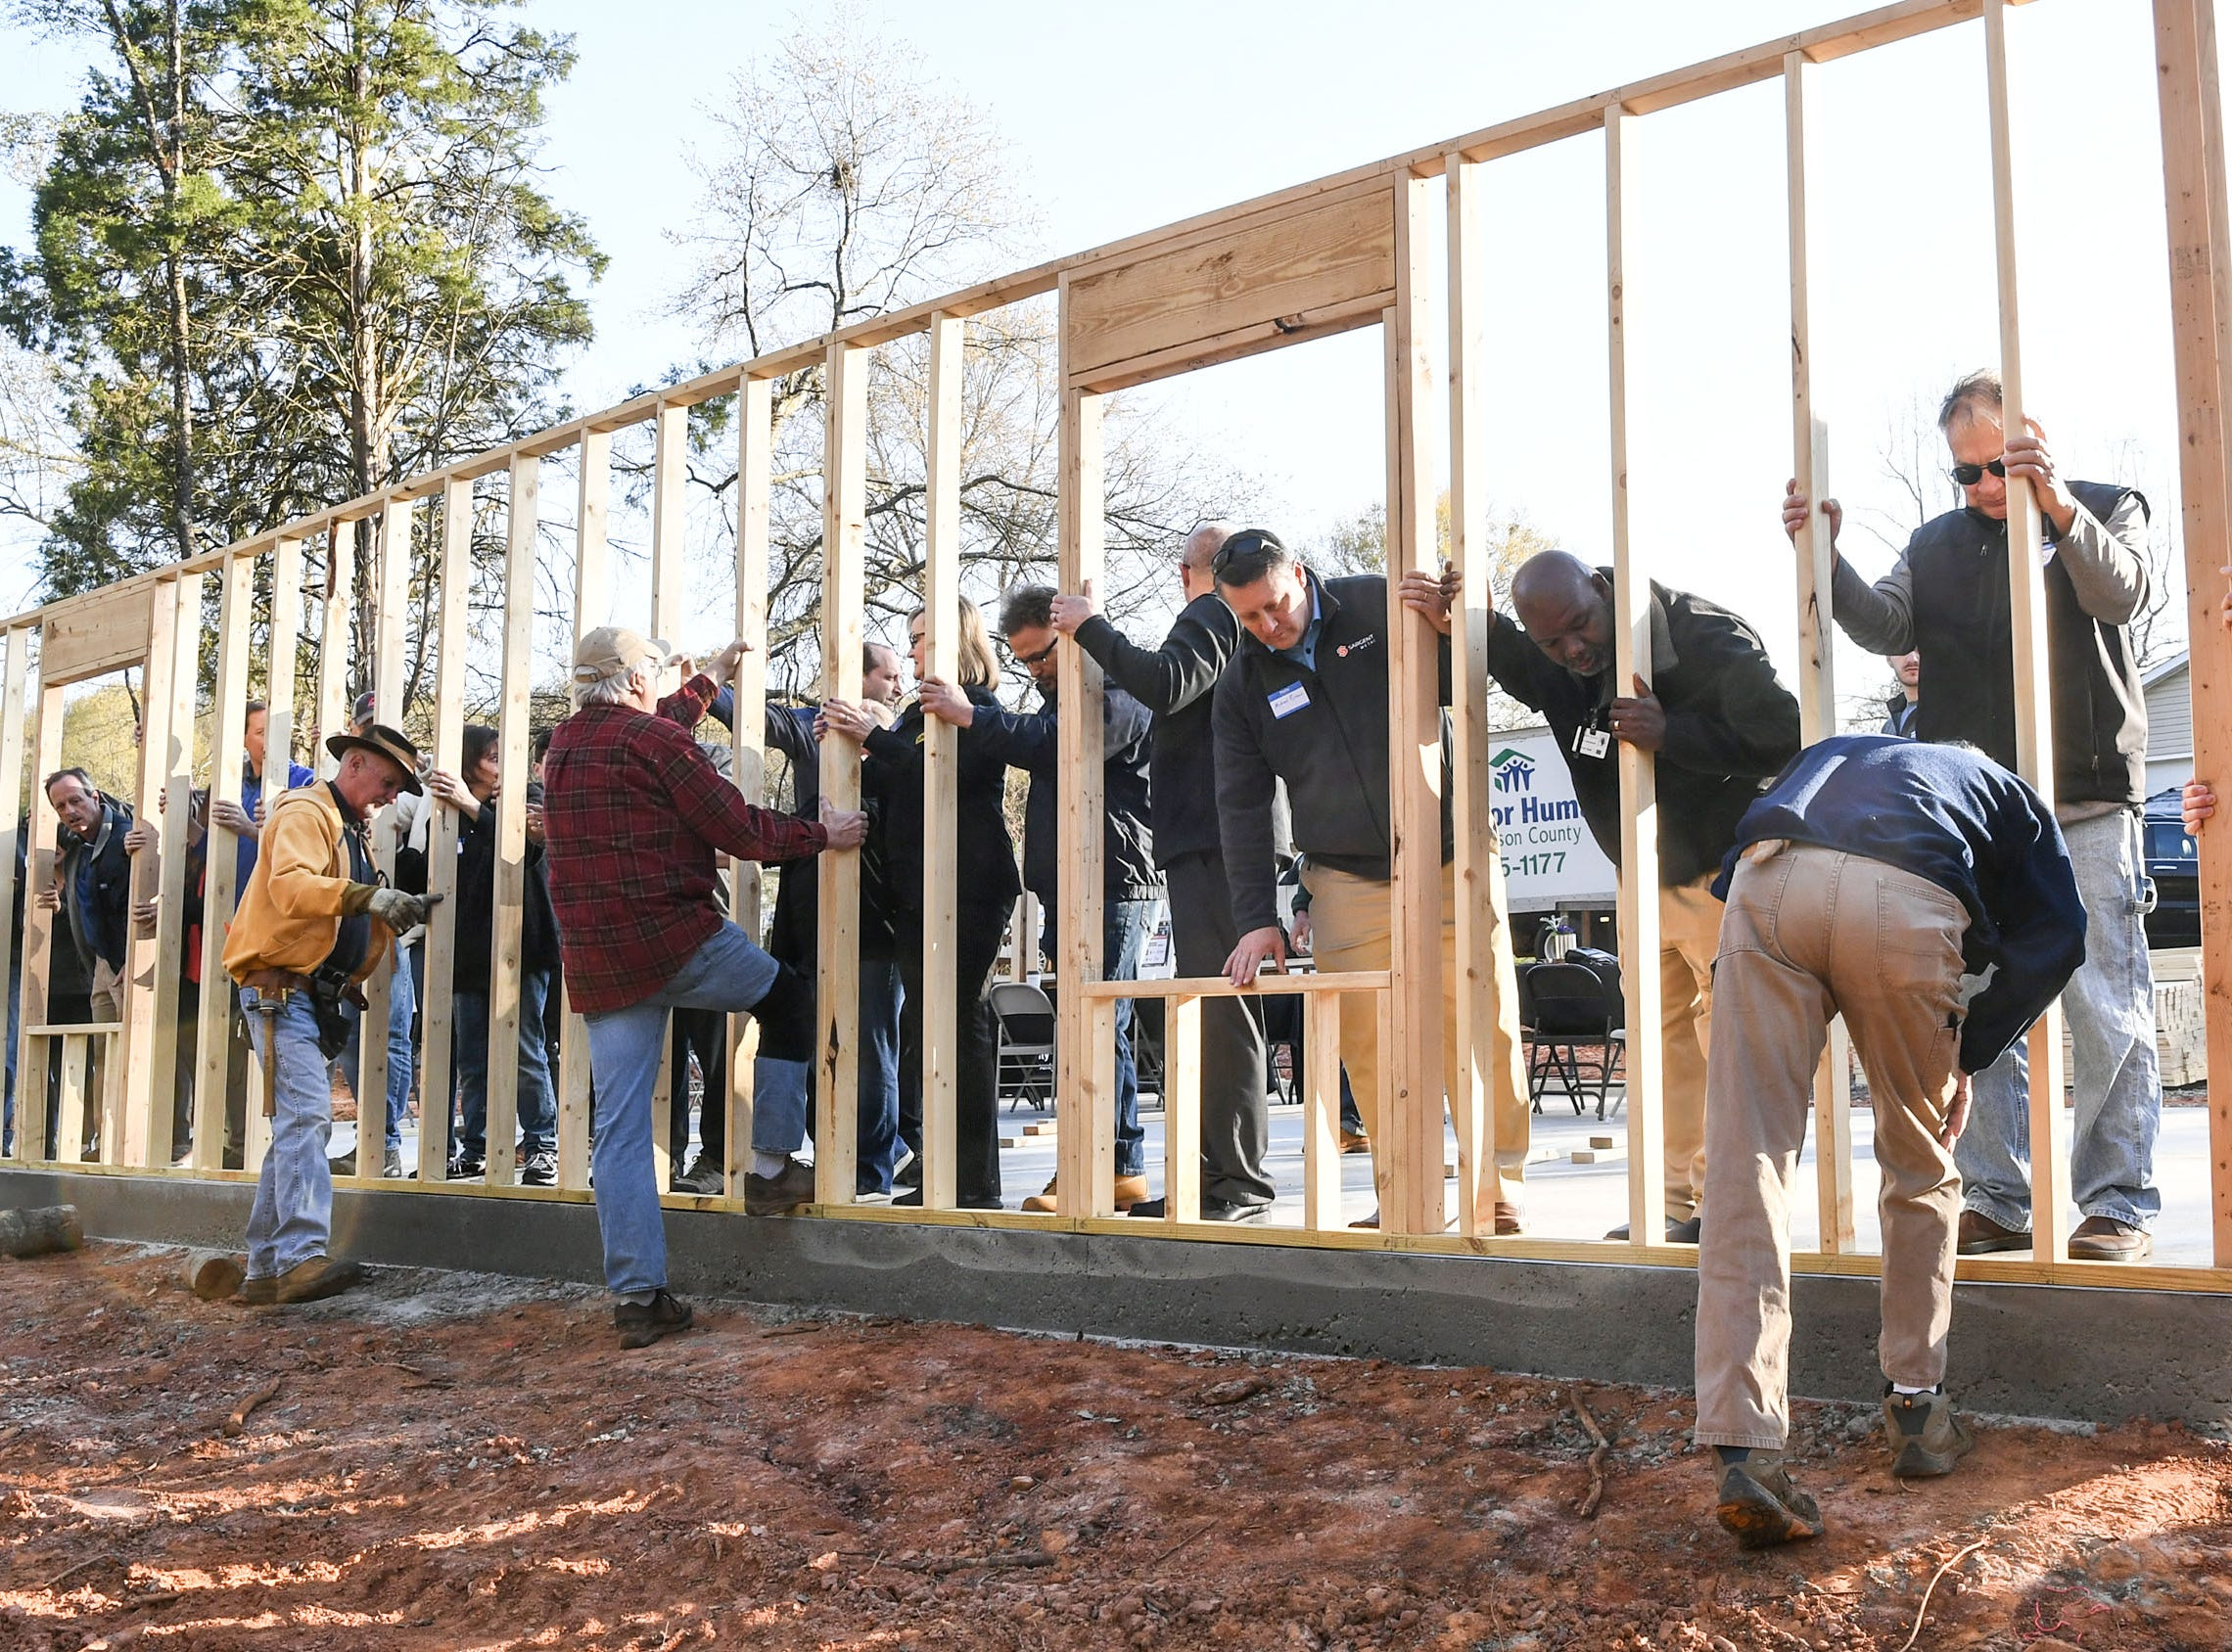 The Habitat for Humanity of Anderson County and group of 24 volunteers joined together for a wall-raising event at a home build for new homeowner recipient Victoria Santos in Anderson Thursday.